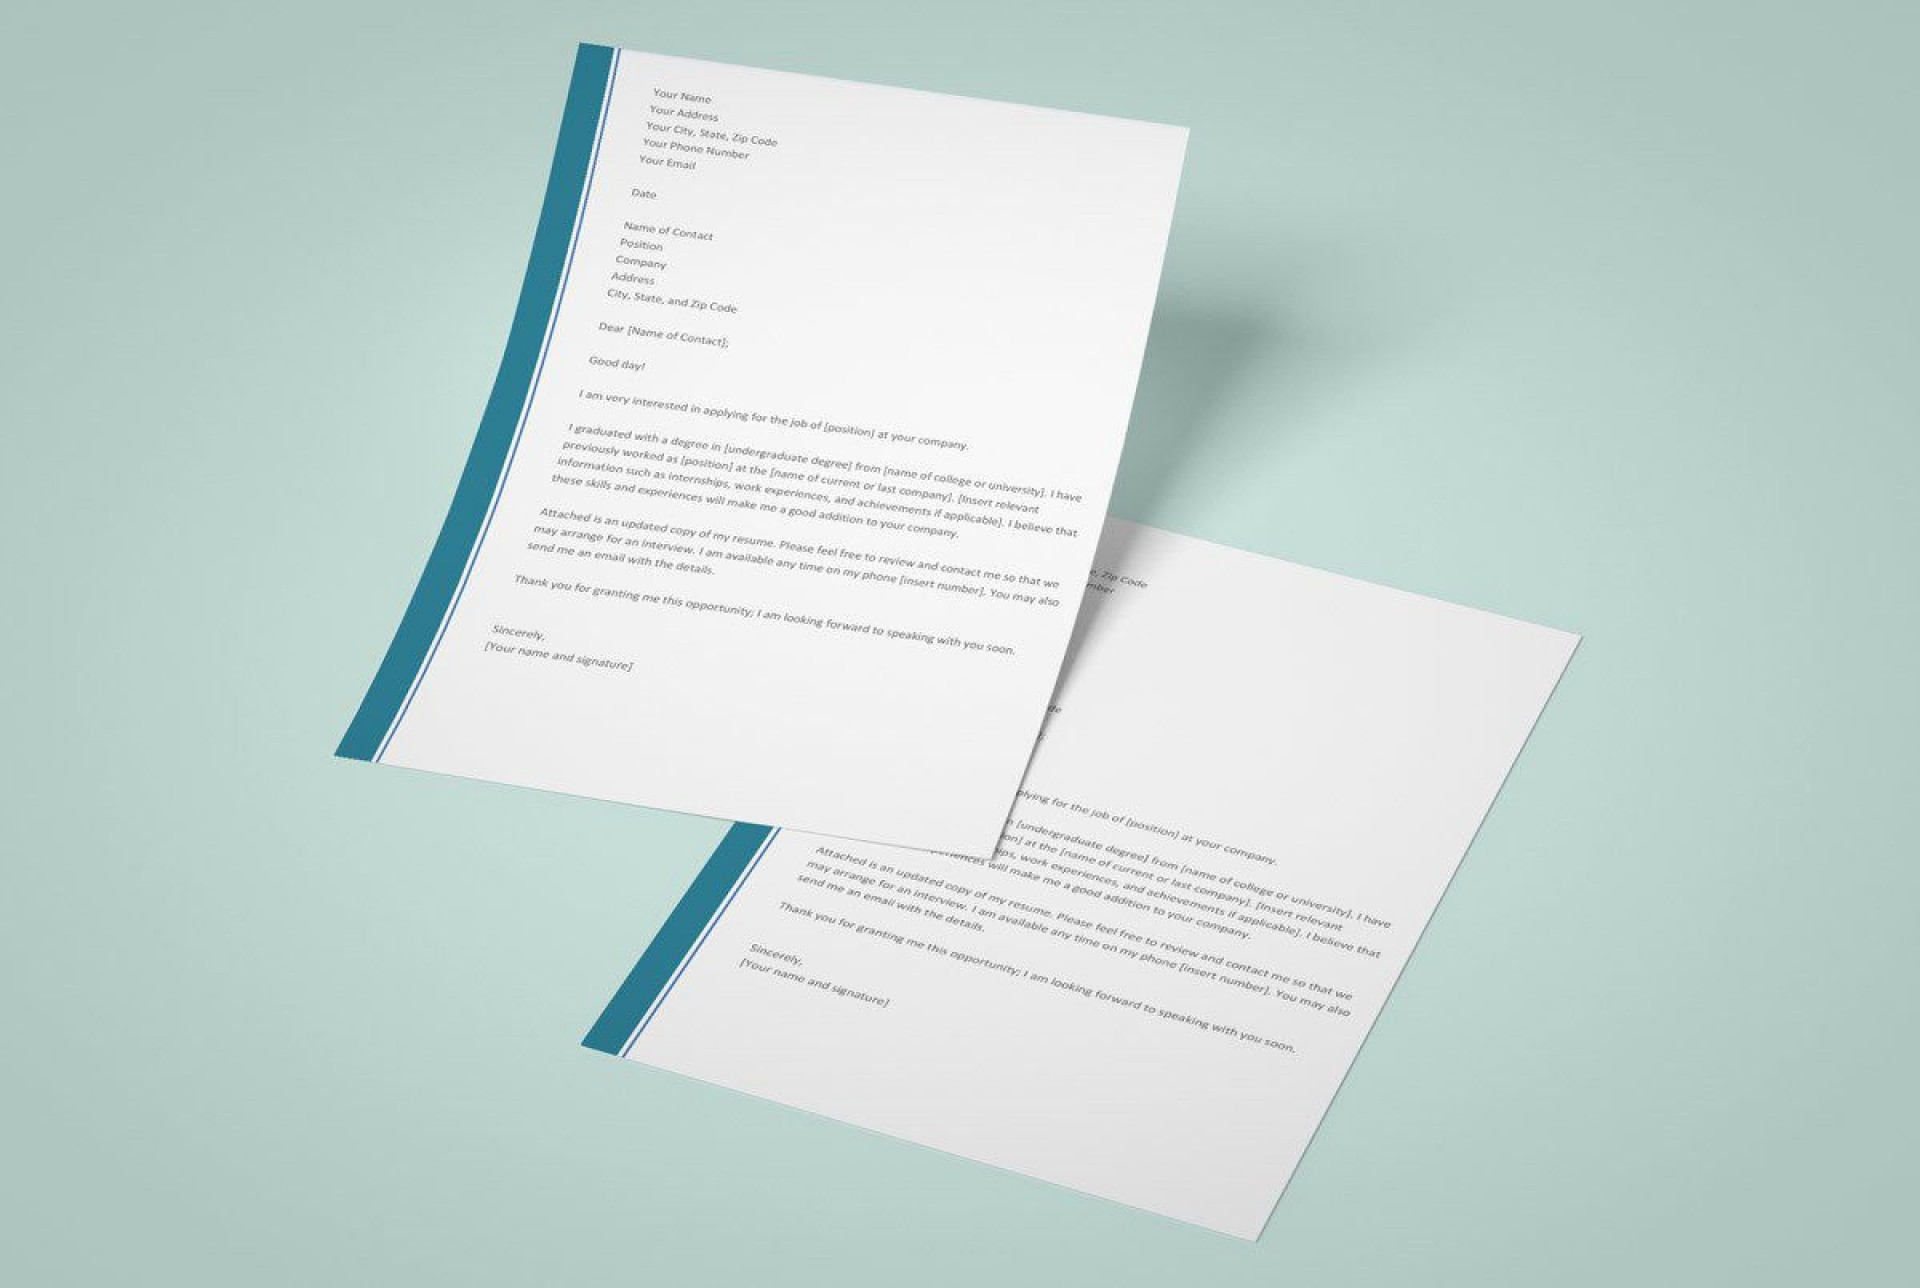 003 Stupendou Resume Cover Letter Template Word Free High Def 1920